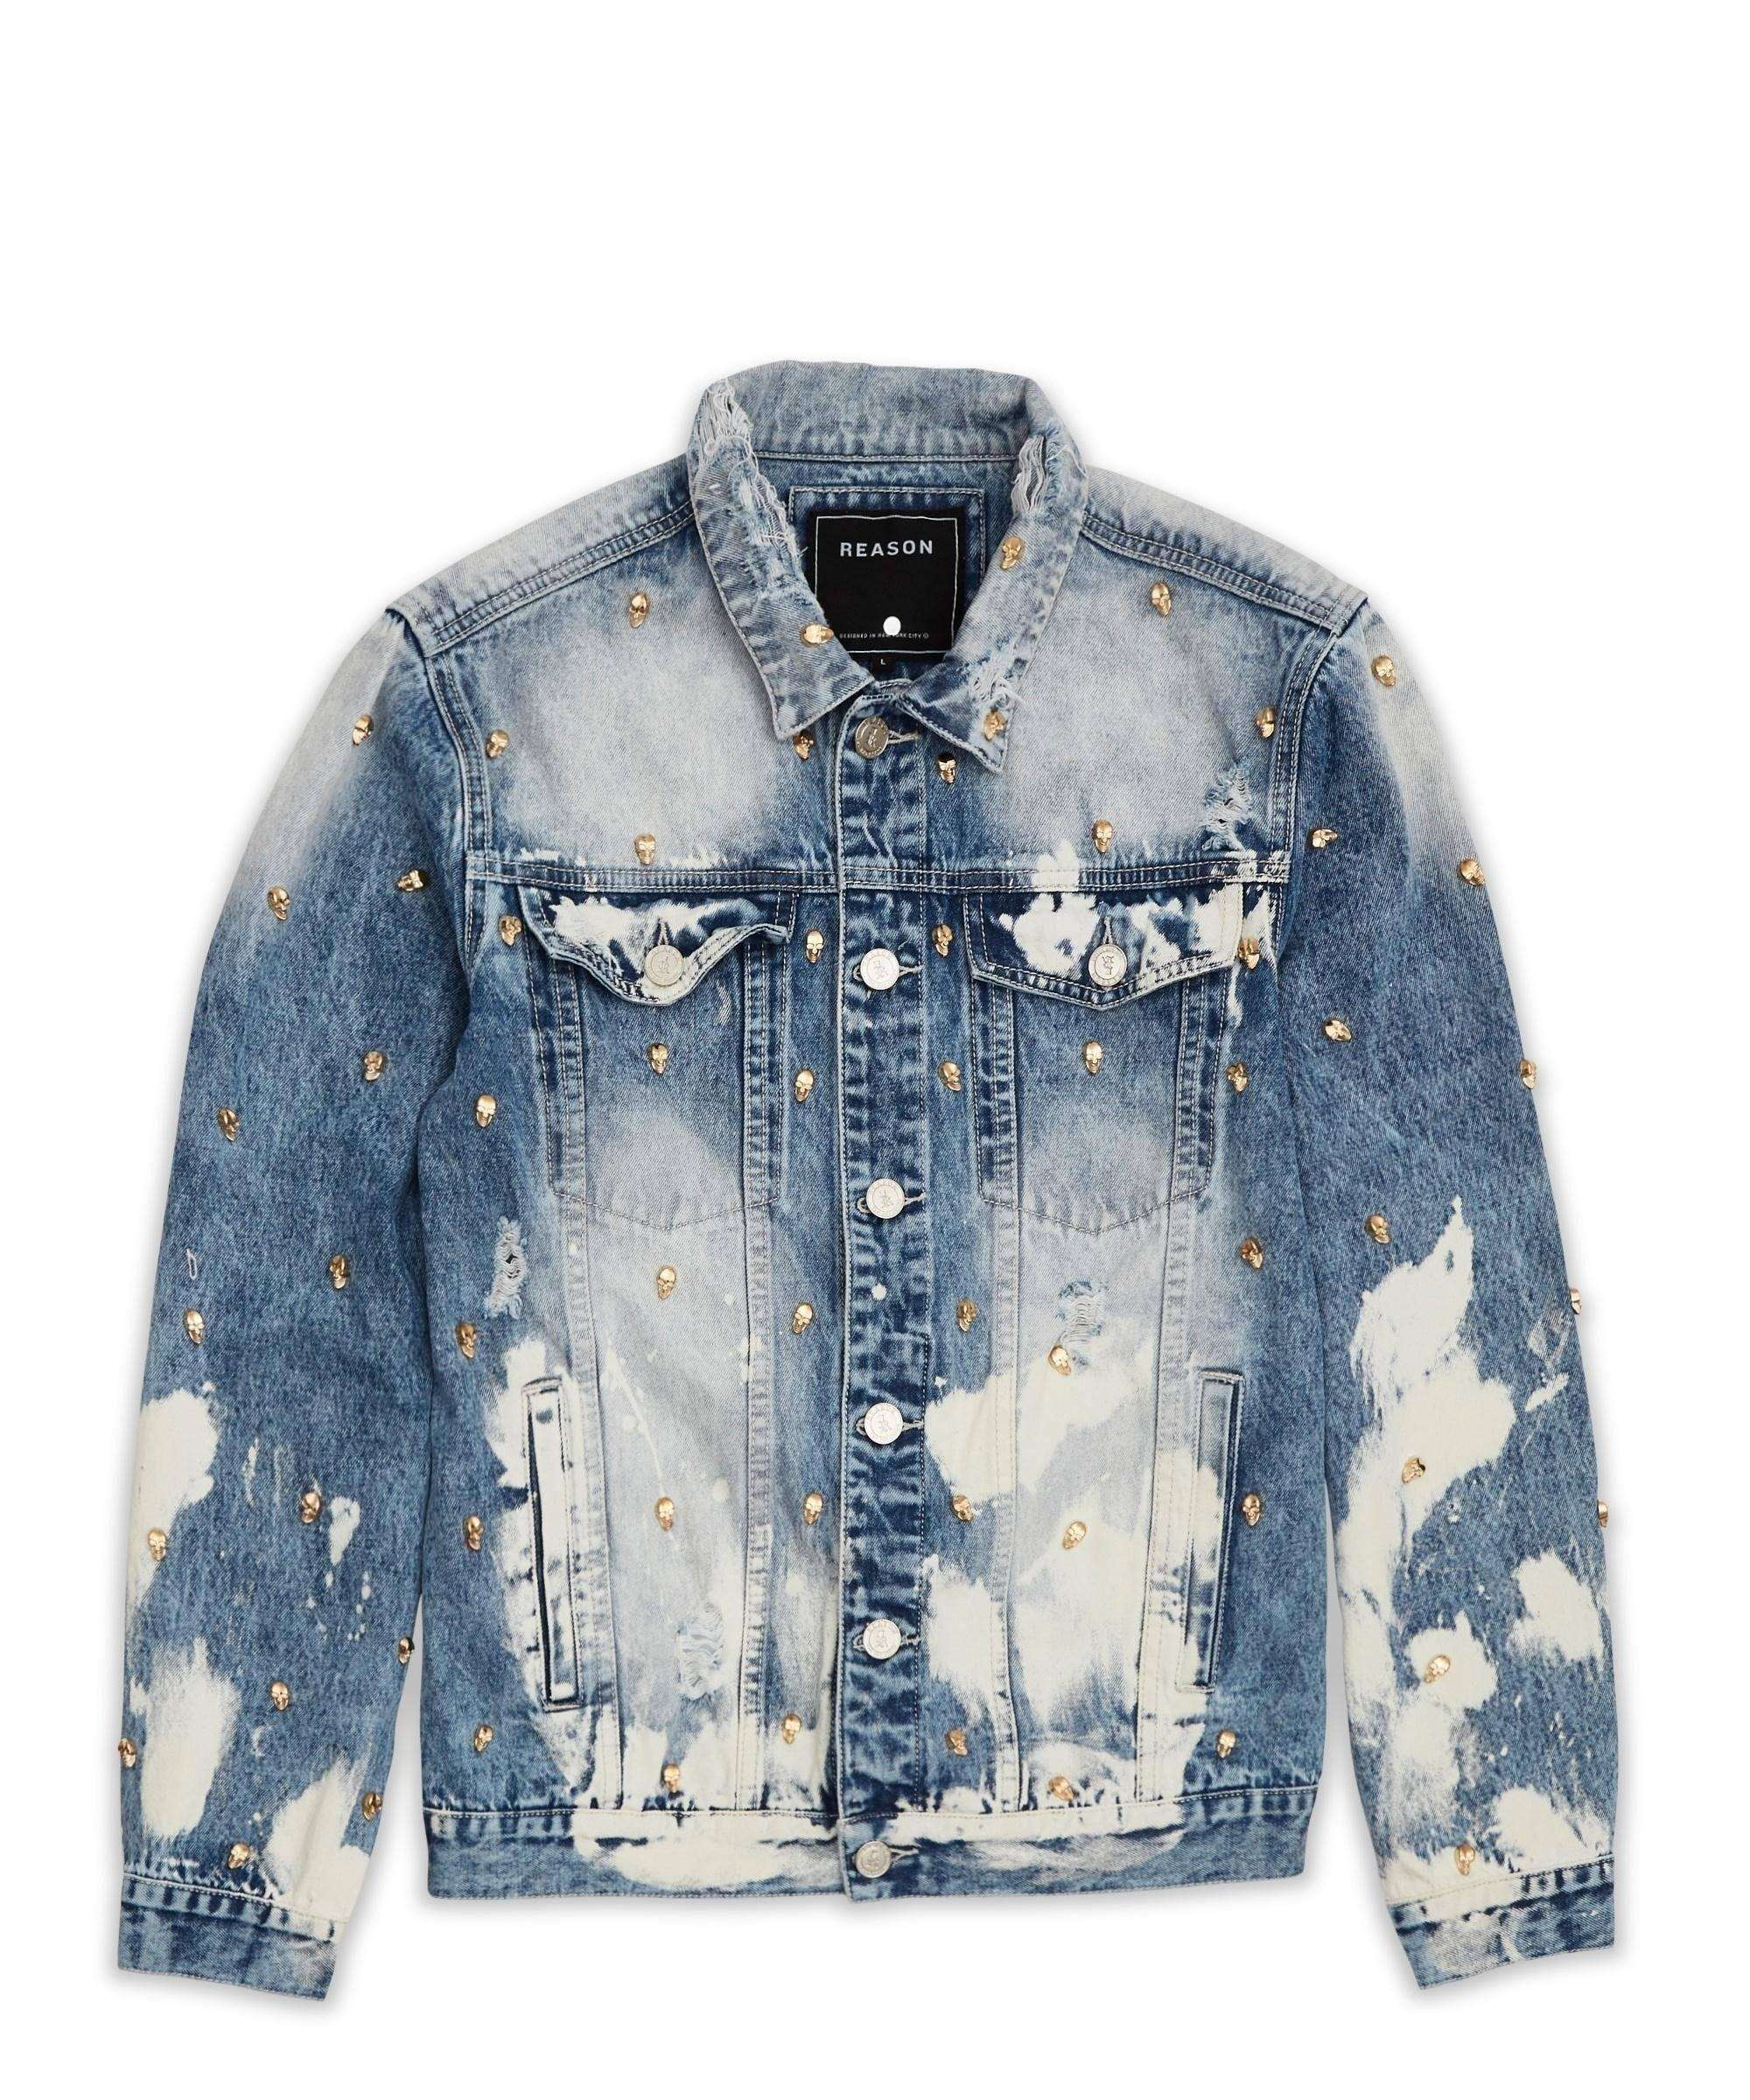 LANCASTER DENIM JACKET Reason Clothing